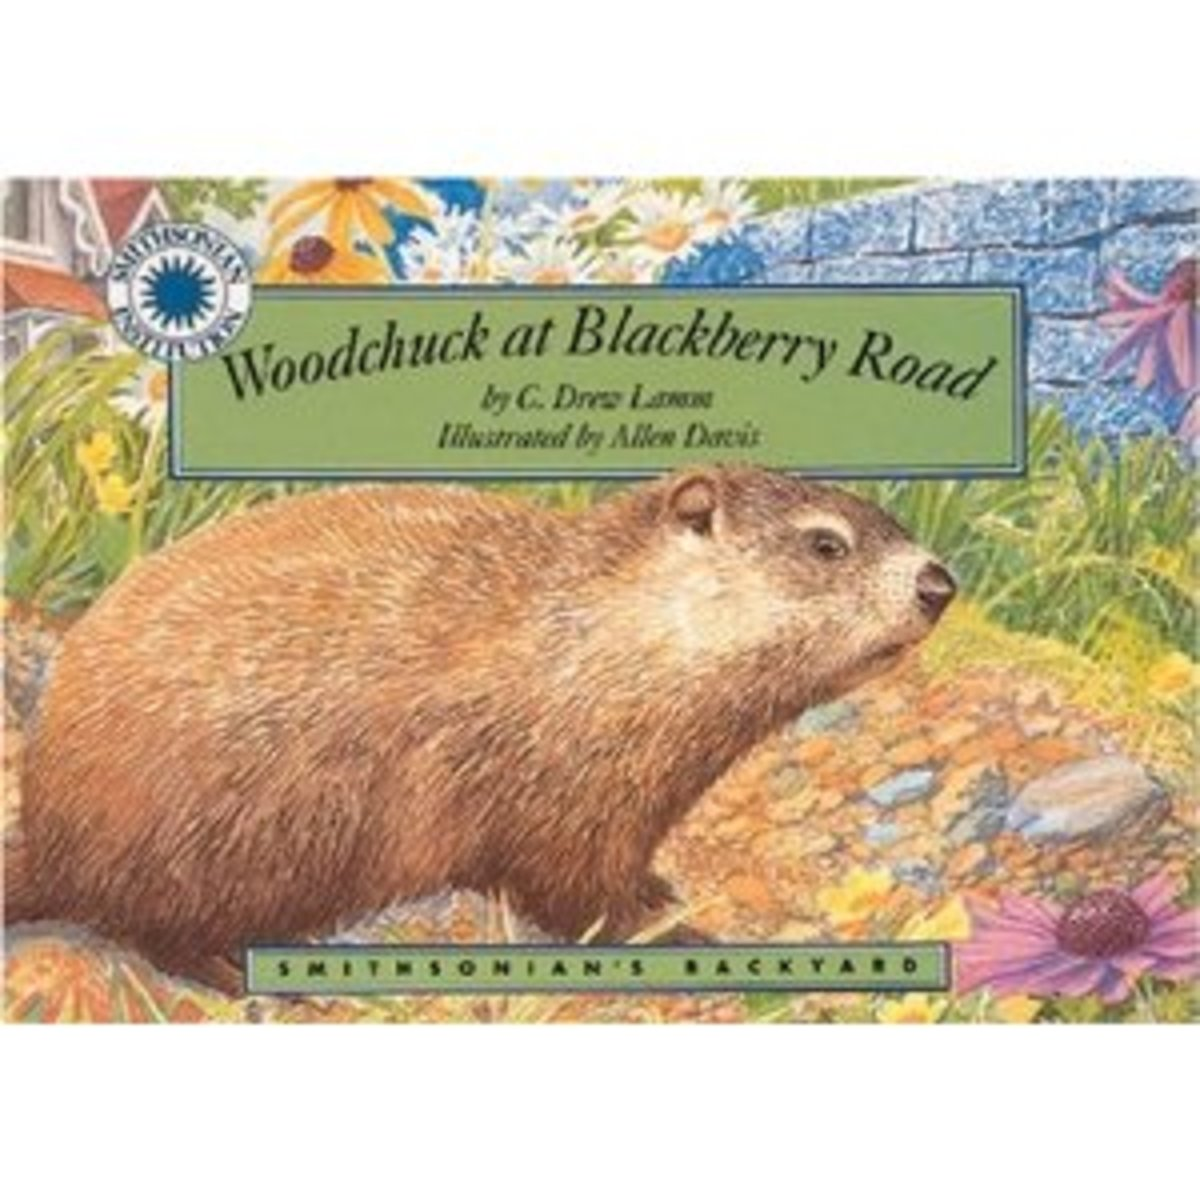 Woodchuck at Blackberry Road (Smithsonian's Backyard)